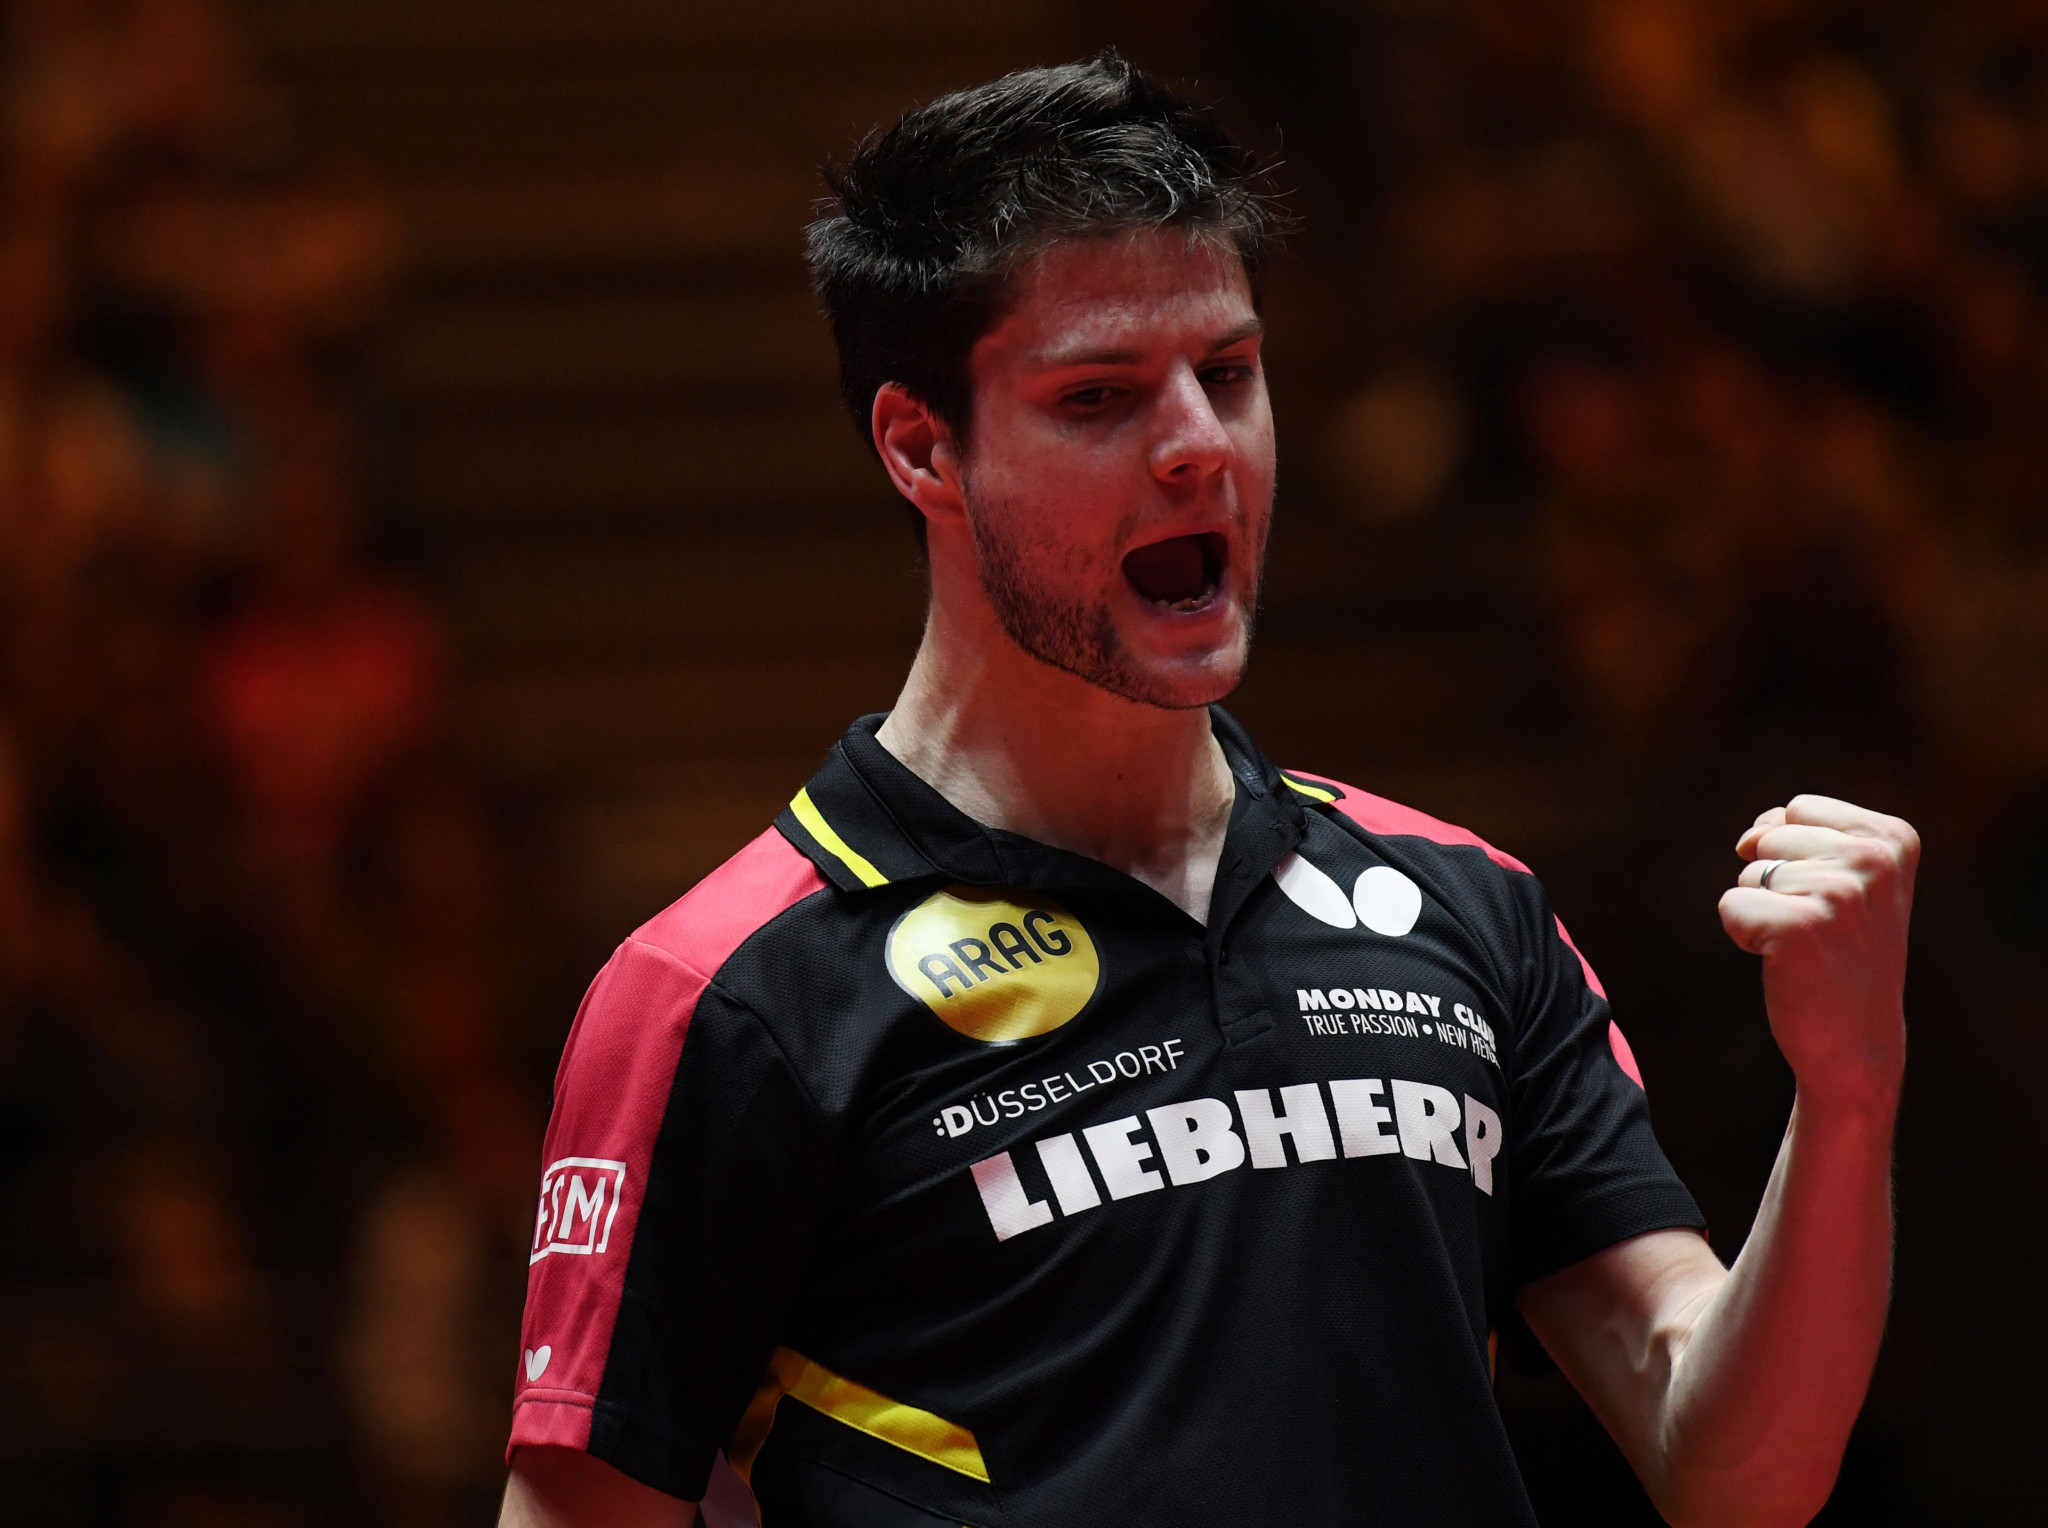 Germany tipped for both titles at ITTF European Championships